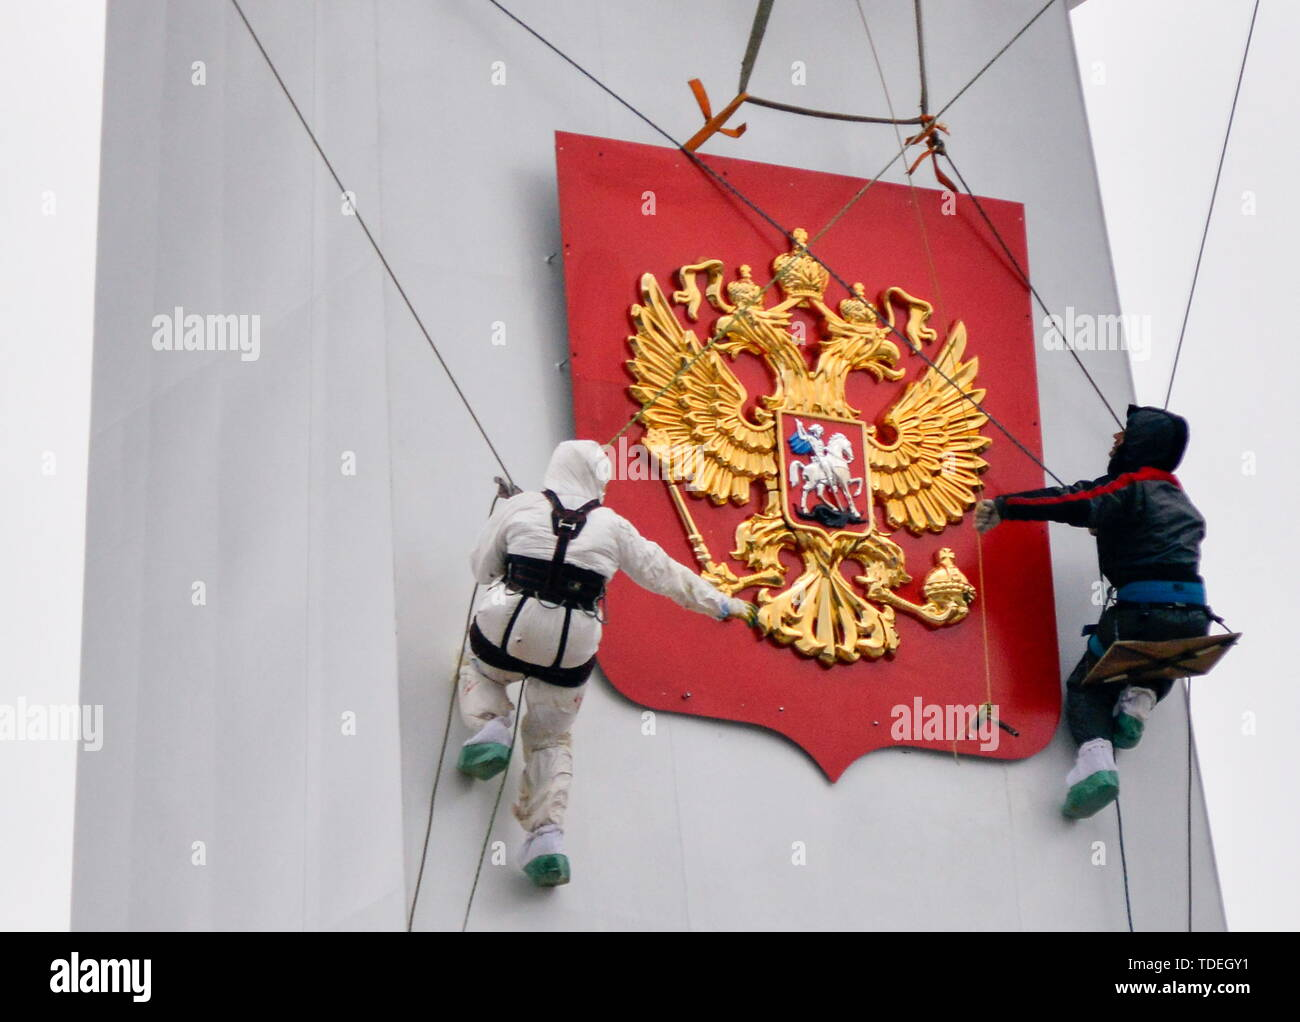 MURMANSK, RUSSIA - JUNE 14, 2019: Workers raise a state emblem banner aboard Akademik Lomonosov, a floating nuclear power unit; being part of a floating nuclear power station, the vessel belongs to a new class of energy sources based on Russian nuclear shipbuilding technologies. Lev Fedoseyev/TASS - Stock Image